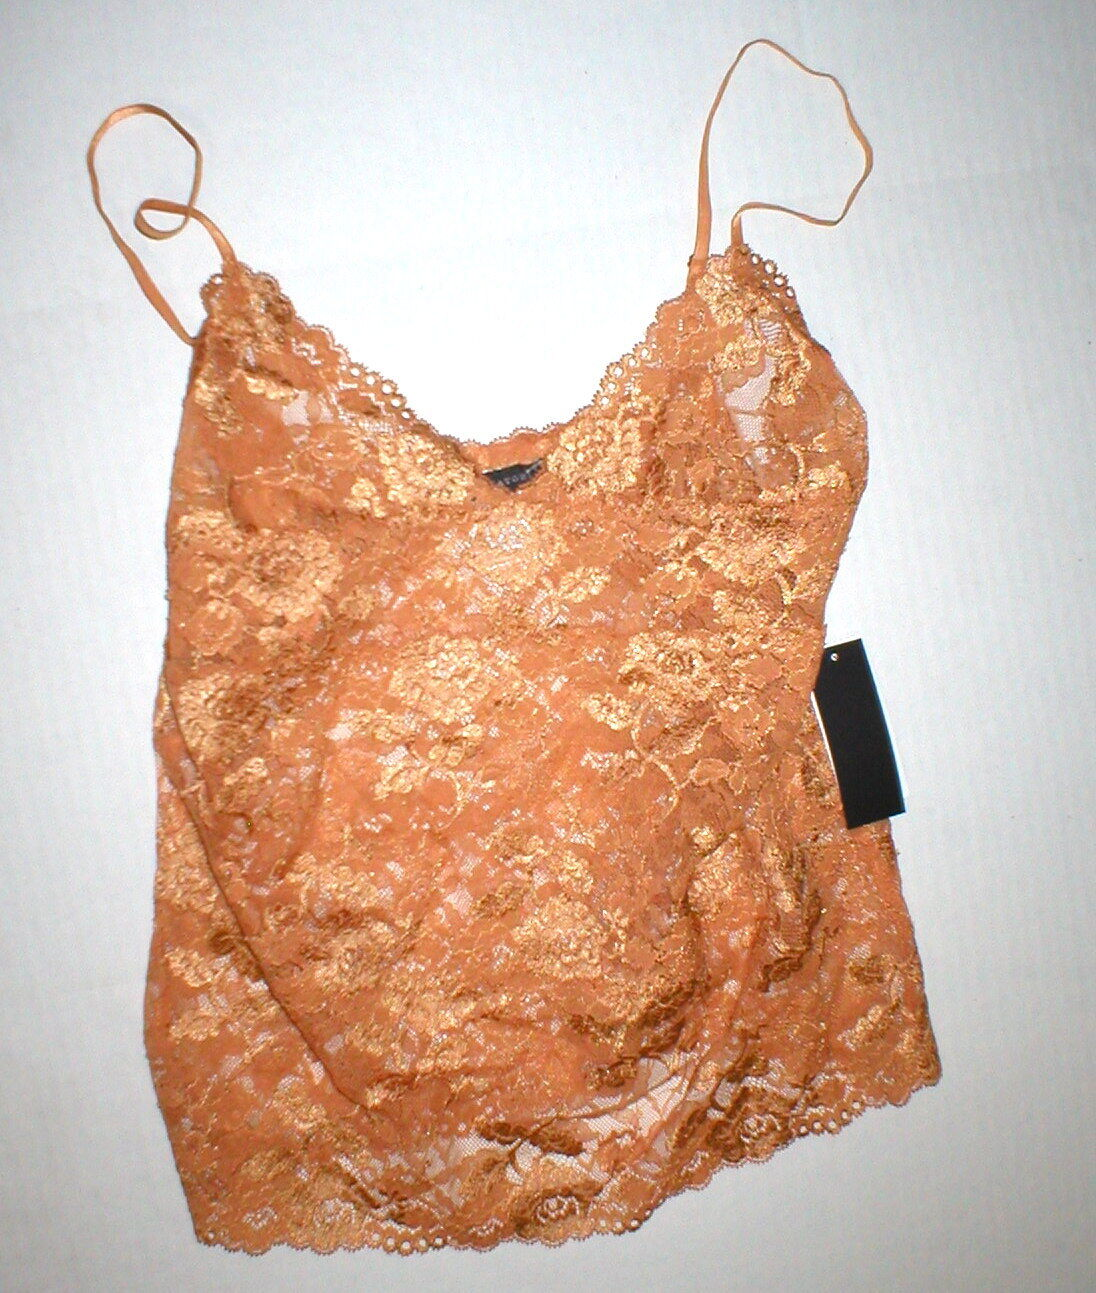 NWT New Designer Josie Natori Lace Camisole Top Womens Sheer Copper M Adjustable